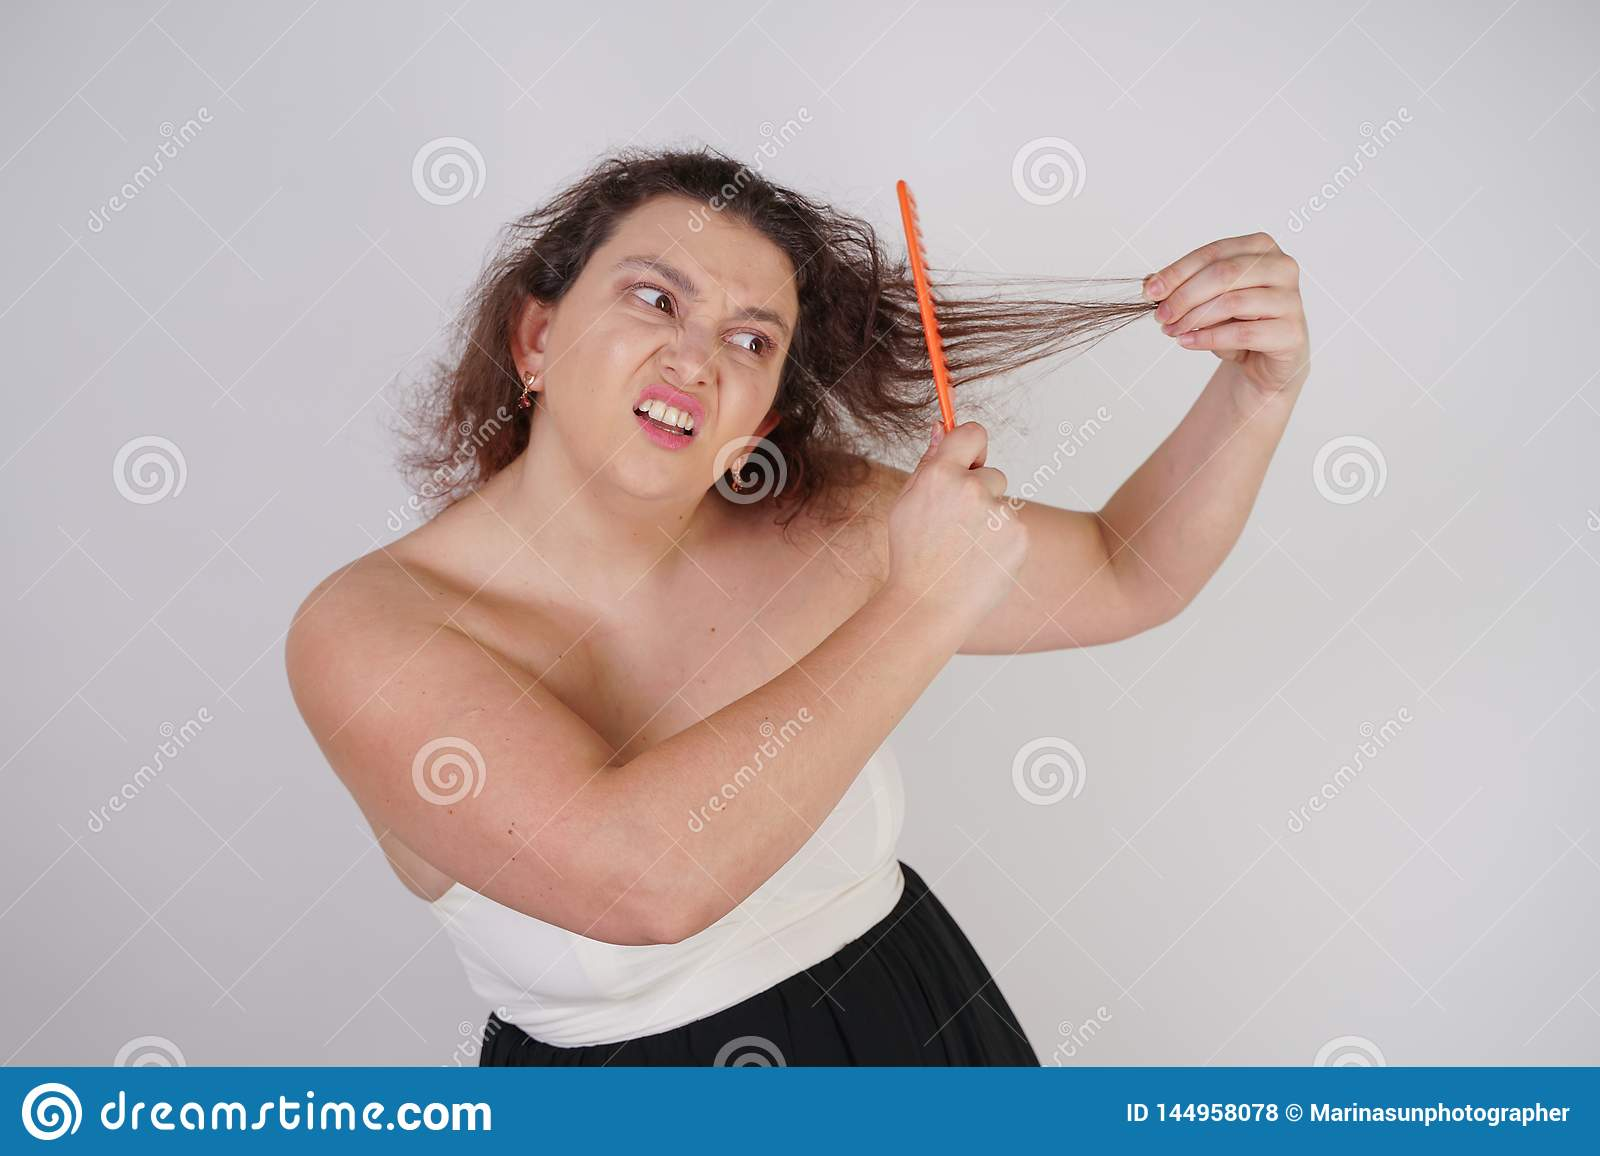 Emotional unhappy woman with disheveled hair tries to comb them and suffers. curvy girl stands on white background in Studio alone